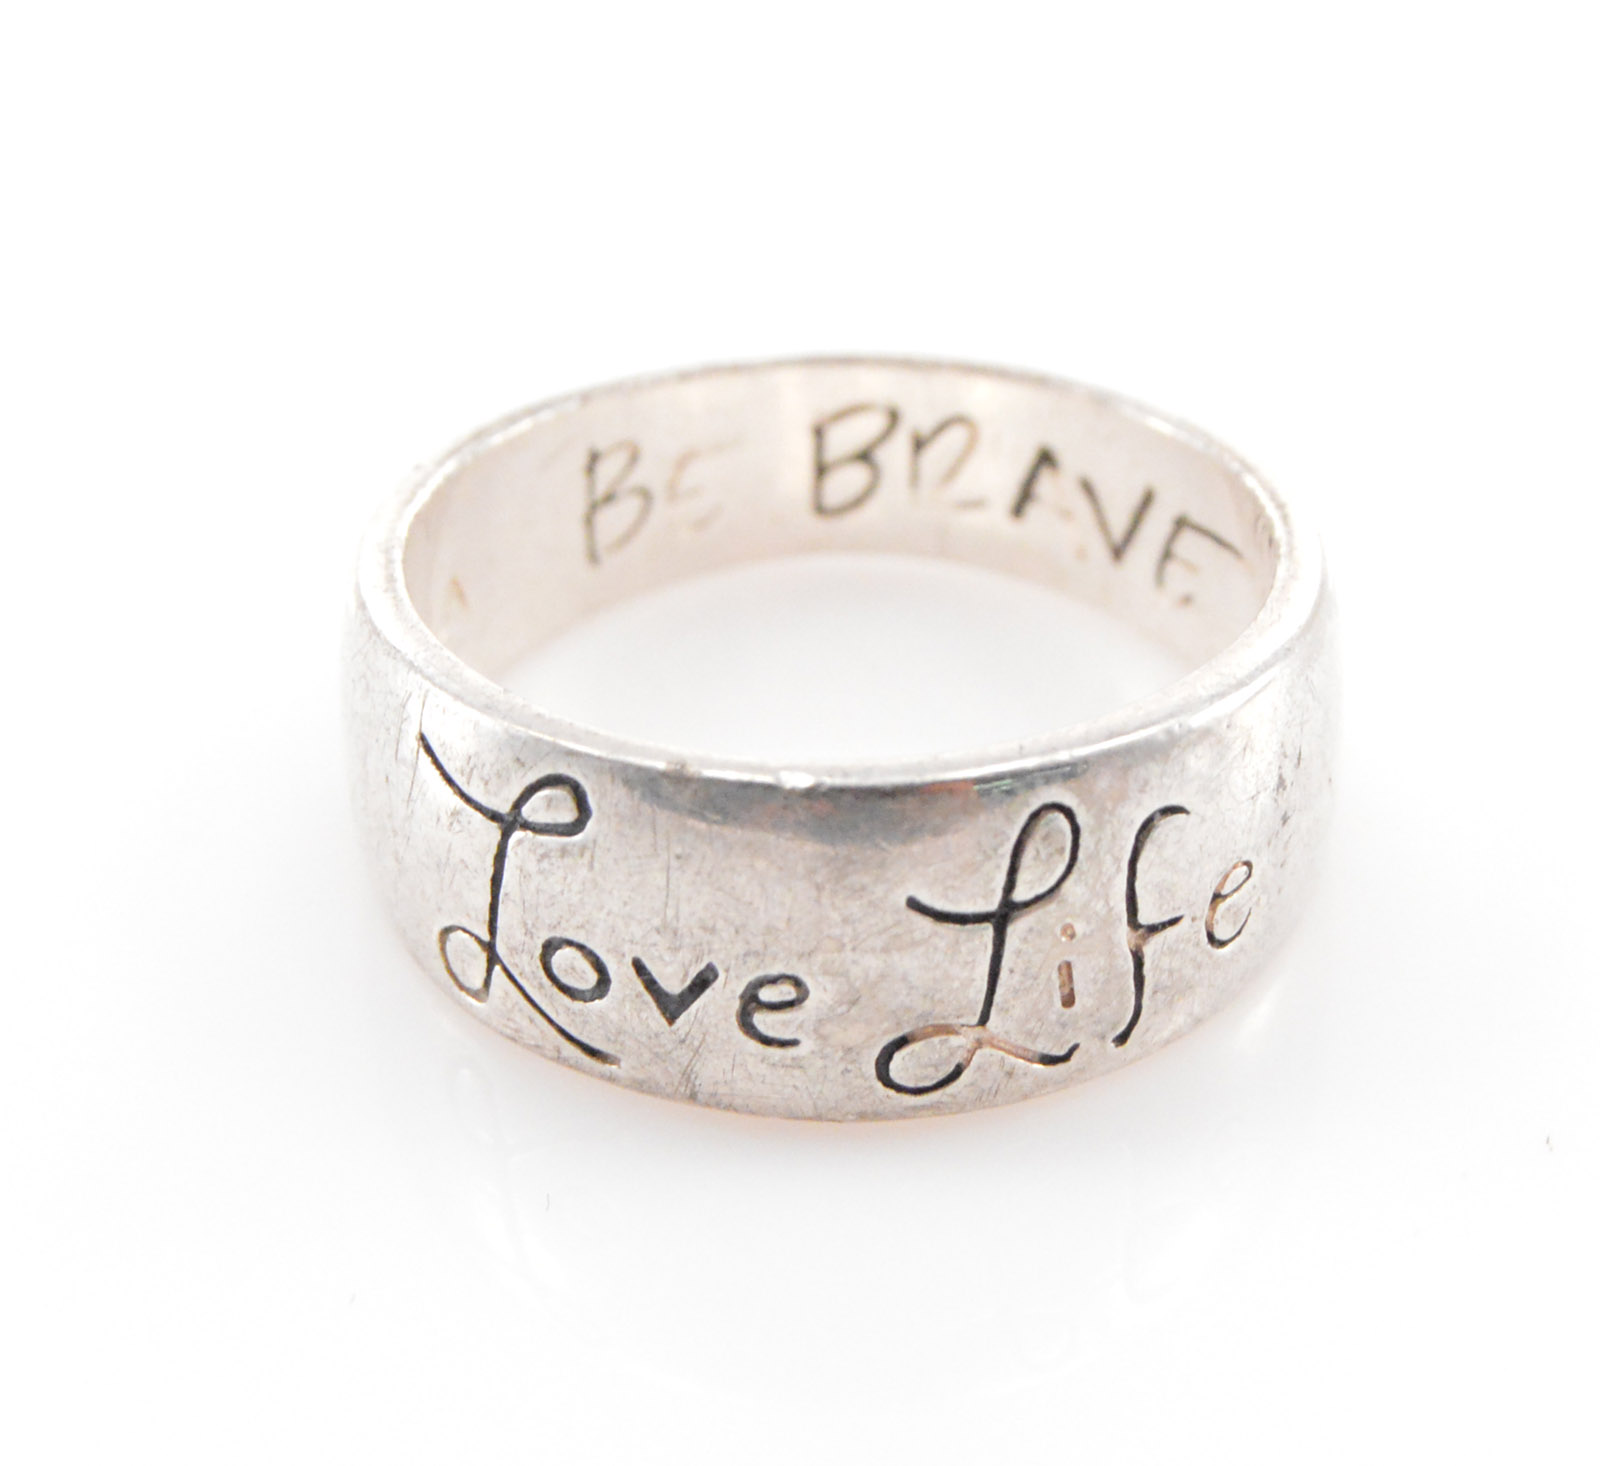 53g Solid Silver Love Lifebe Brave Inscribed Band Sterling Ring